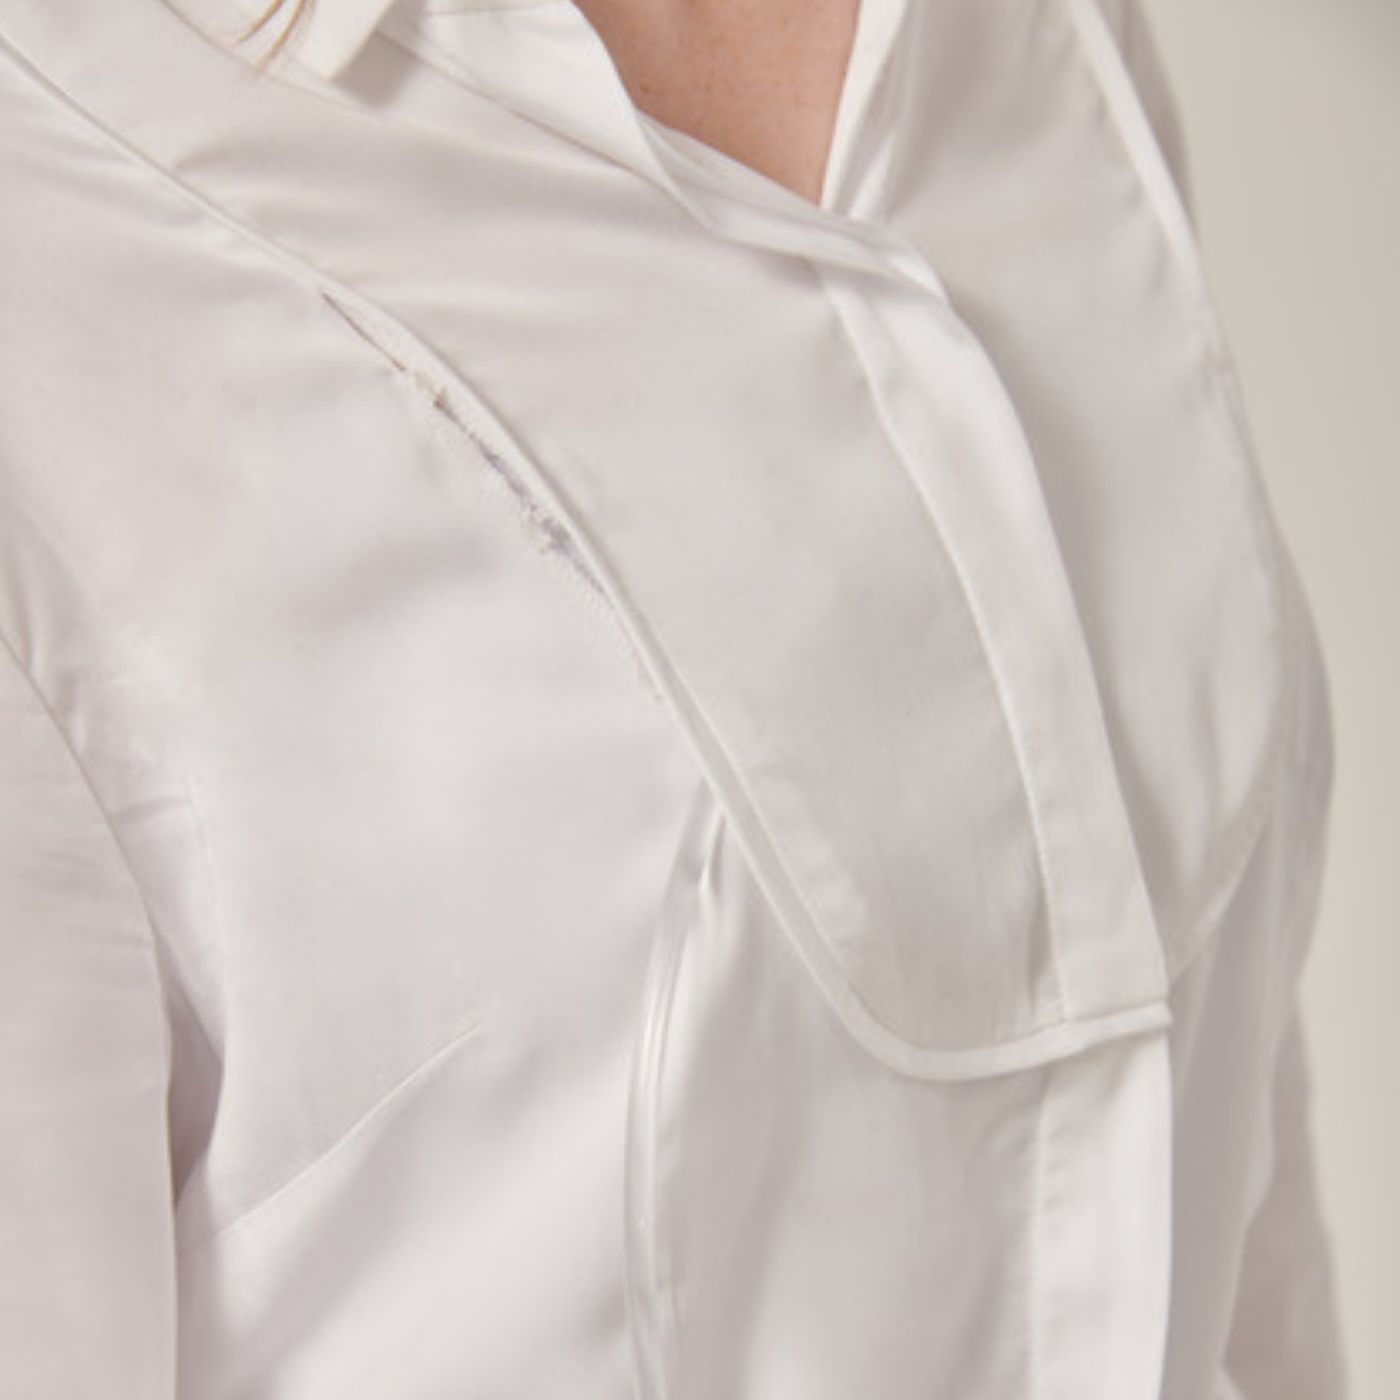 Torso of woman wearing a white button-up shirt. A clear medical tube is coming out from the bottom of the shirt and is concealed by piping up the shirt until it goes back under it above her chest.